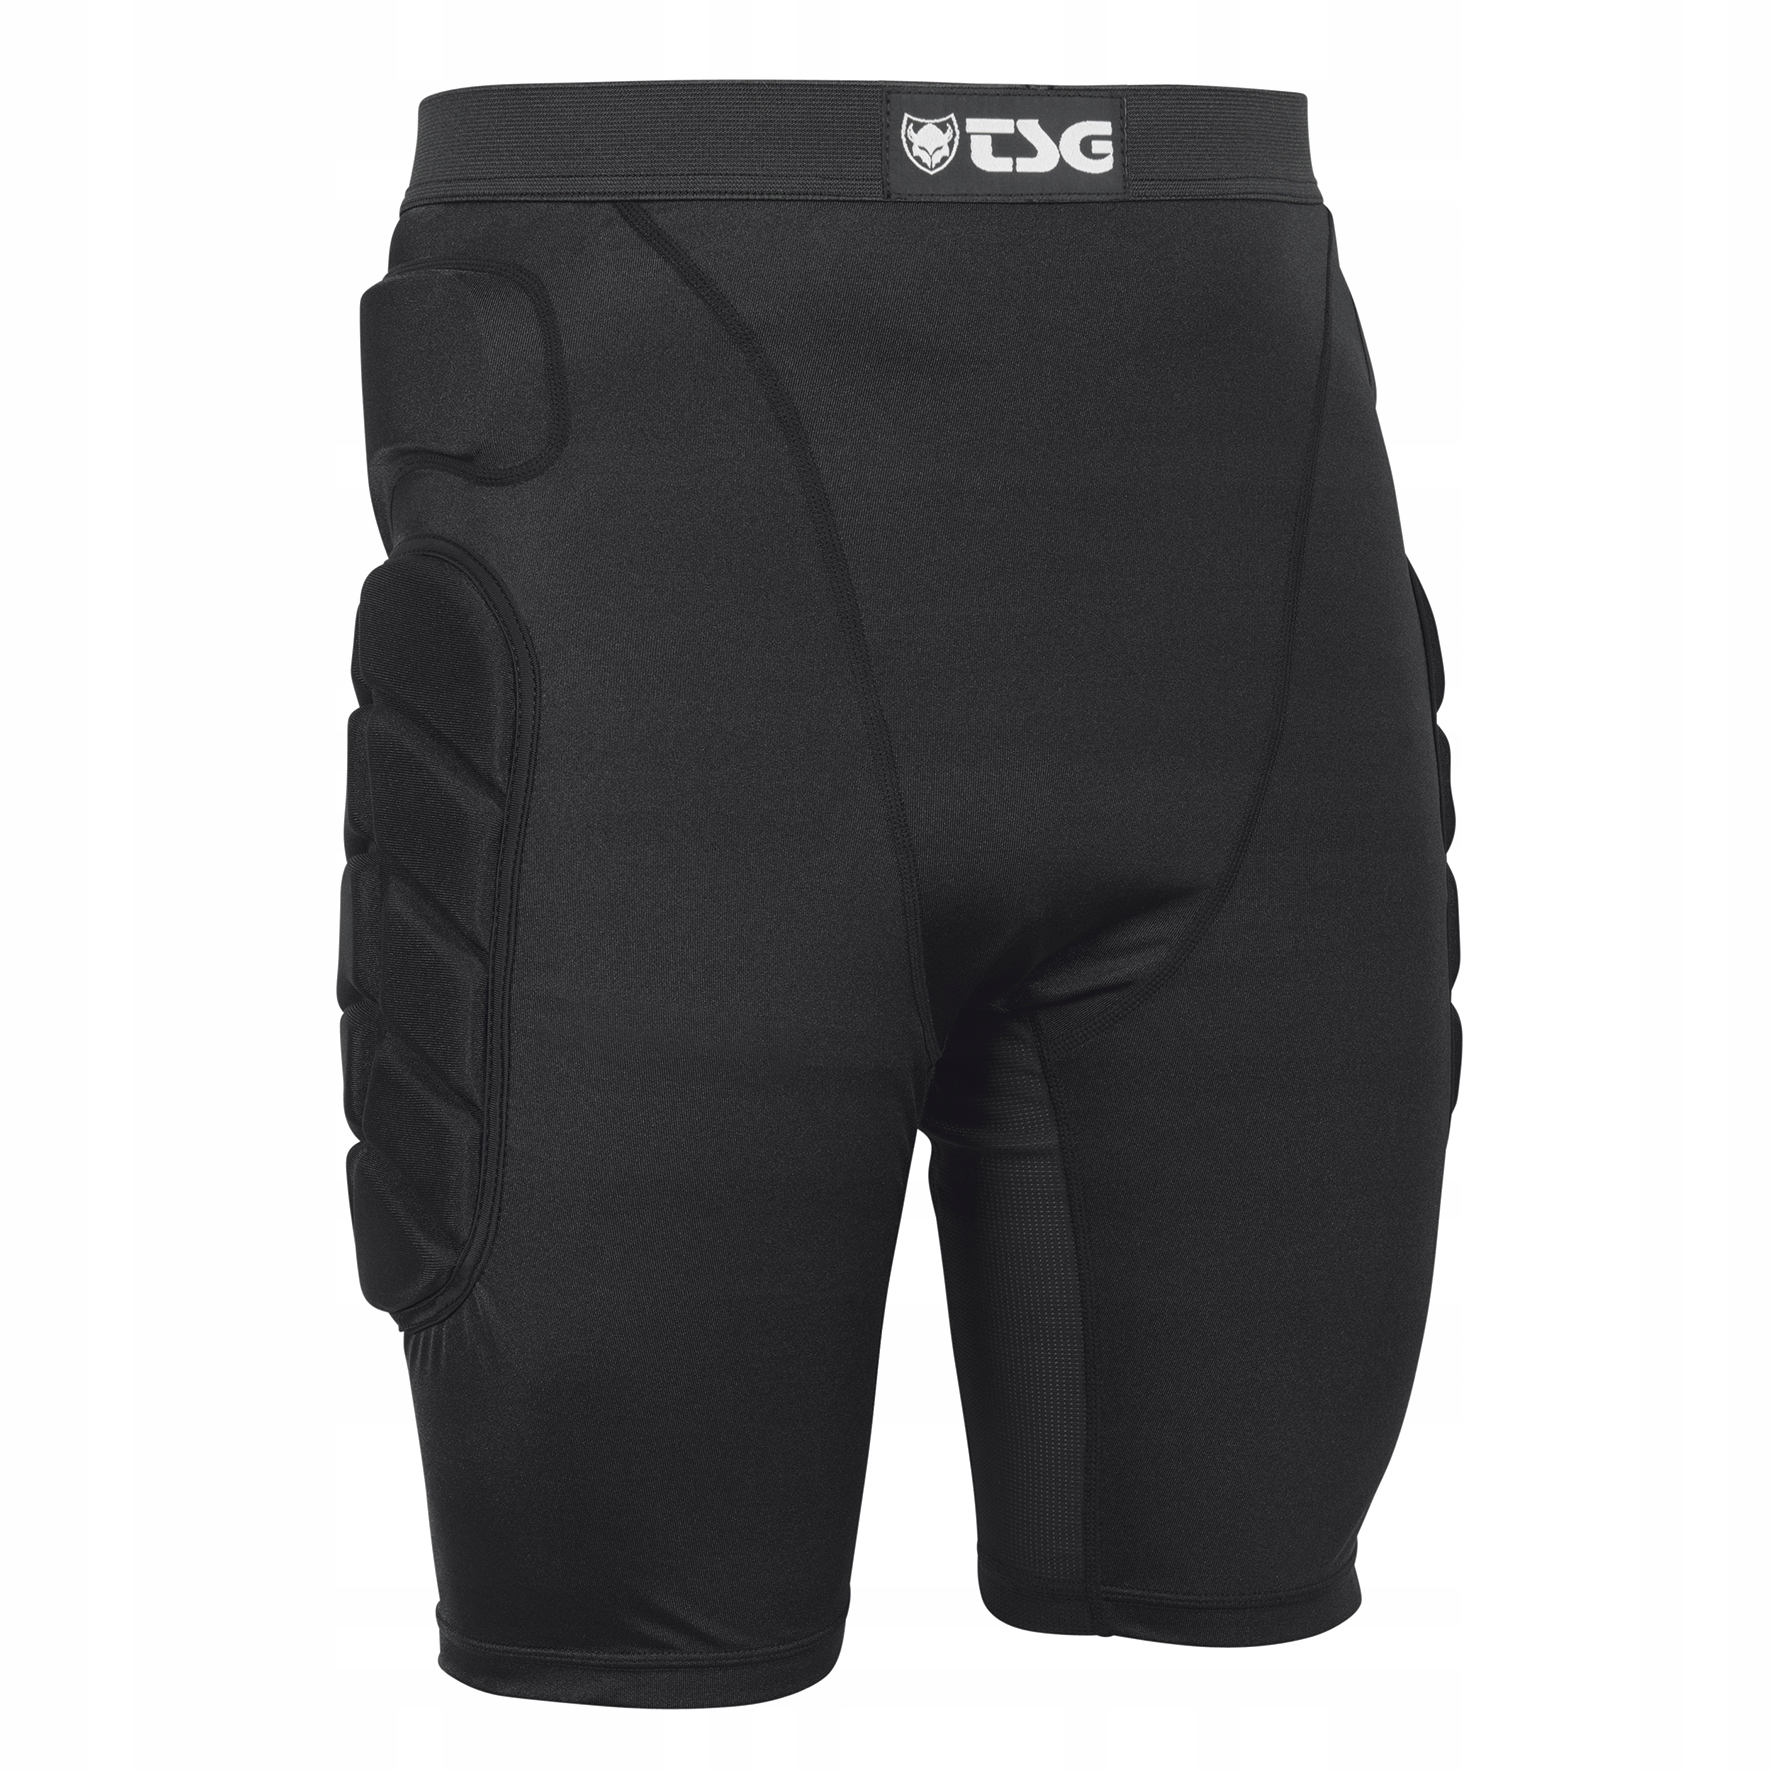 TSG штанишки CRASH PANT ALL TERRAIN czarne rozm. M